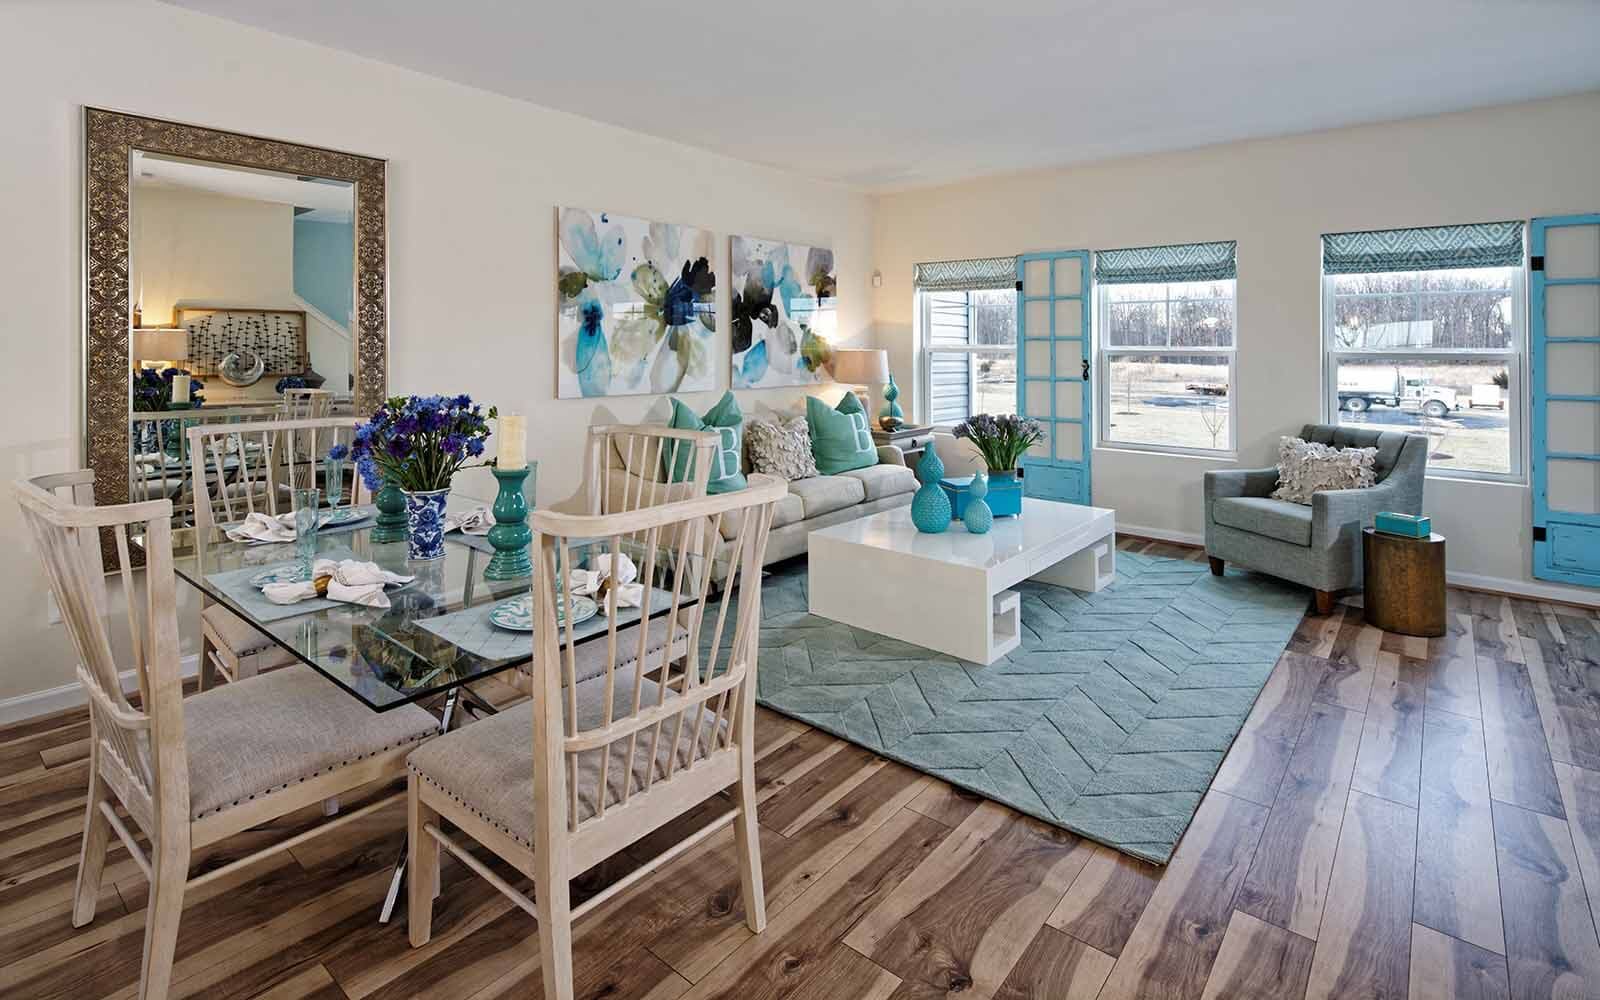 Skyline-living-room3-townhomes-winchester-va-snowden-bridge-brookfield-residential